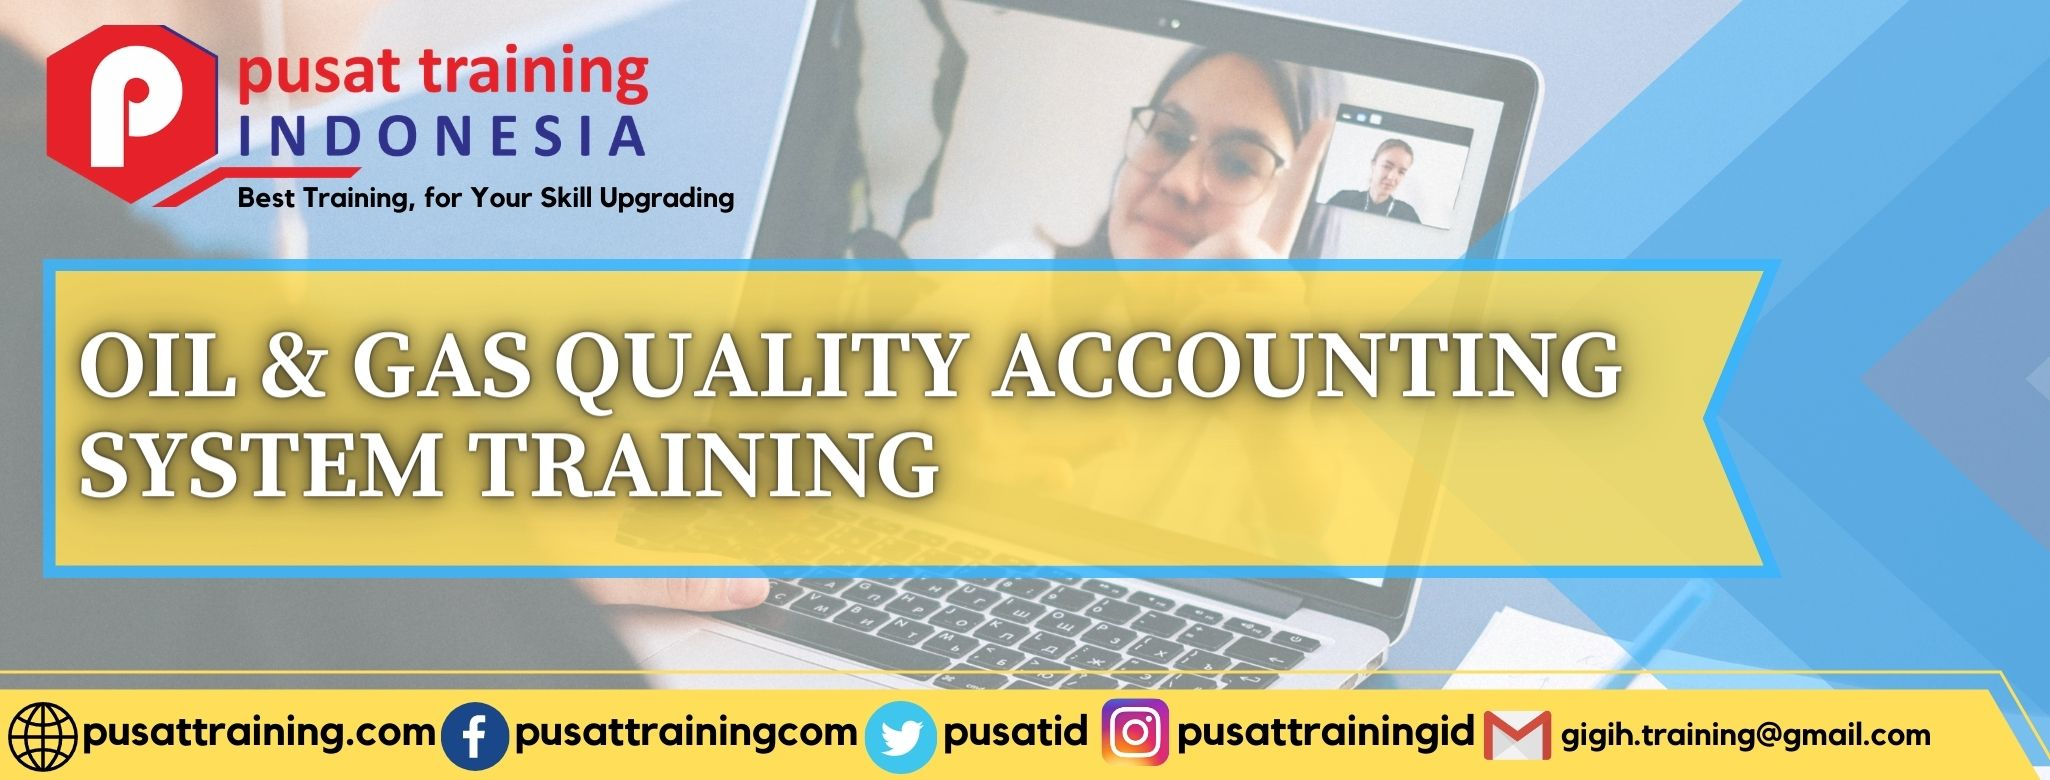 OIL & GAS QUALITY ACCOUNTING SYSTEM TRAINING